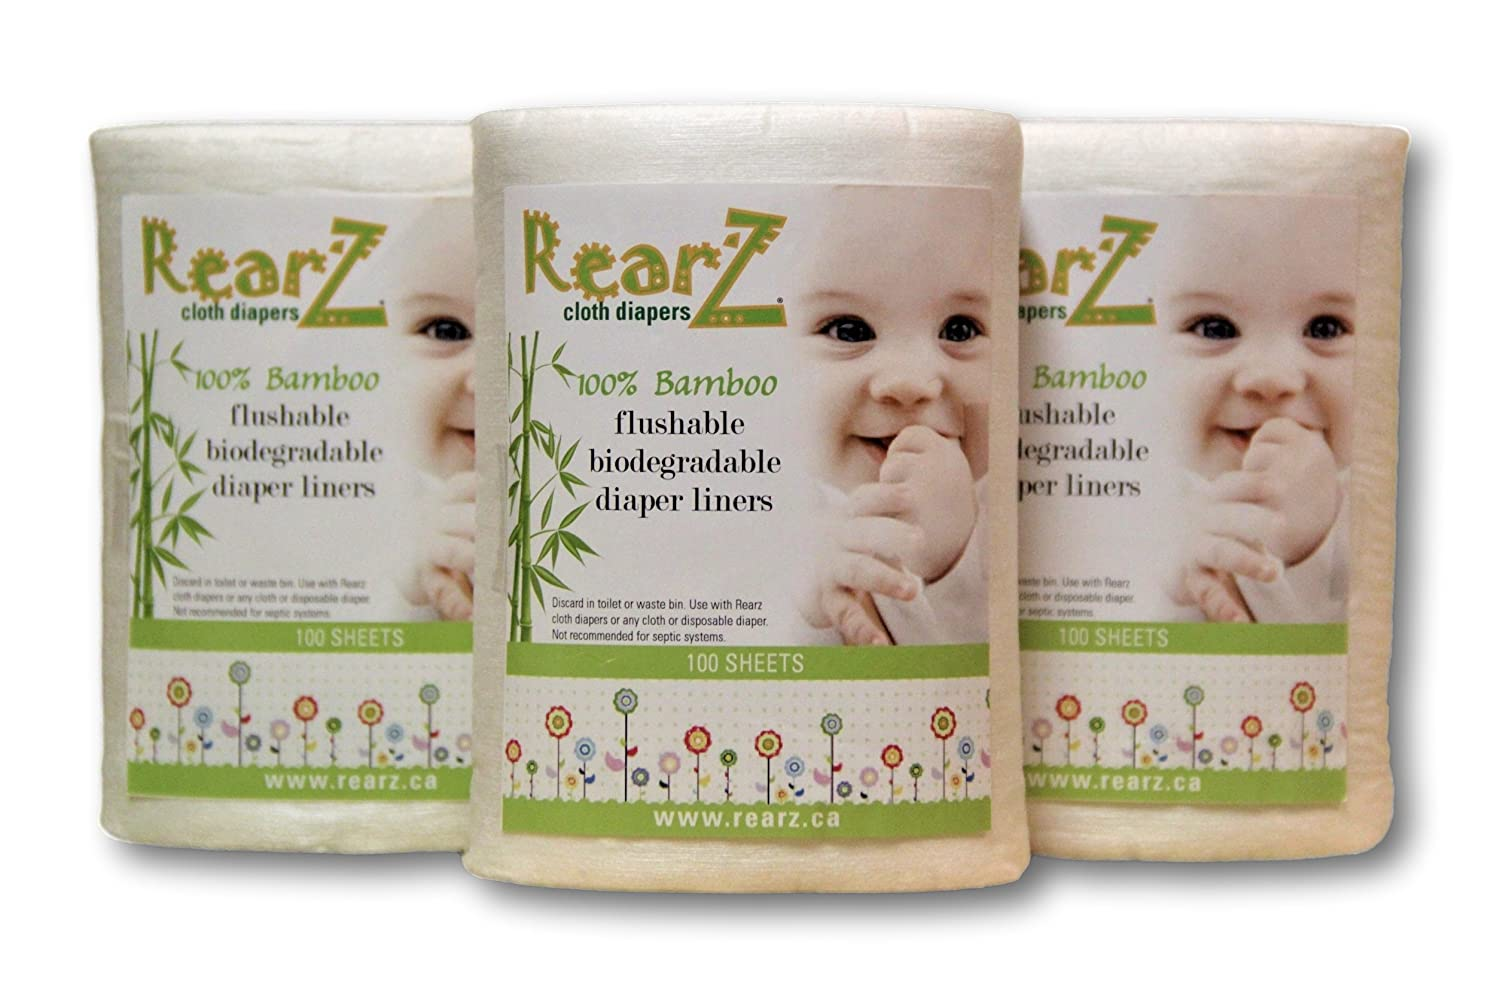 Rearz - All Natural, 100% Flushable Biodegradable Bamboo Diaper Liners (100 Sheets) (1 Pack)